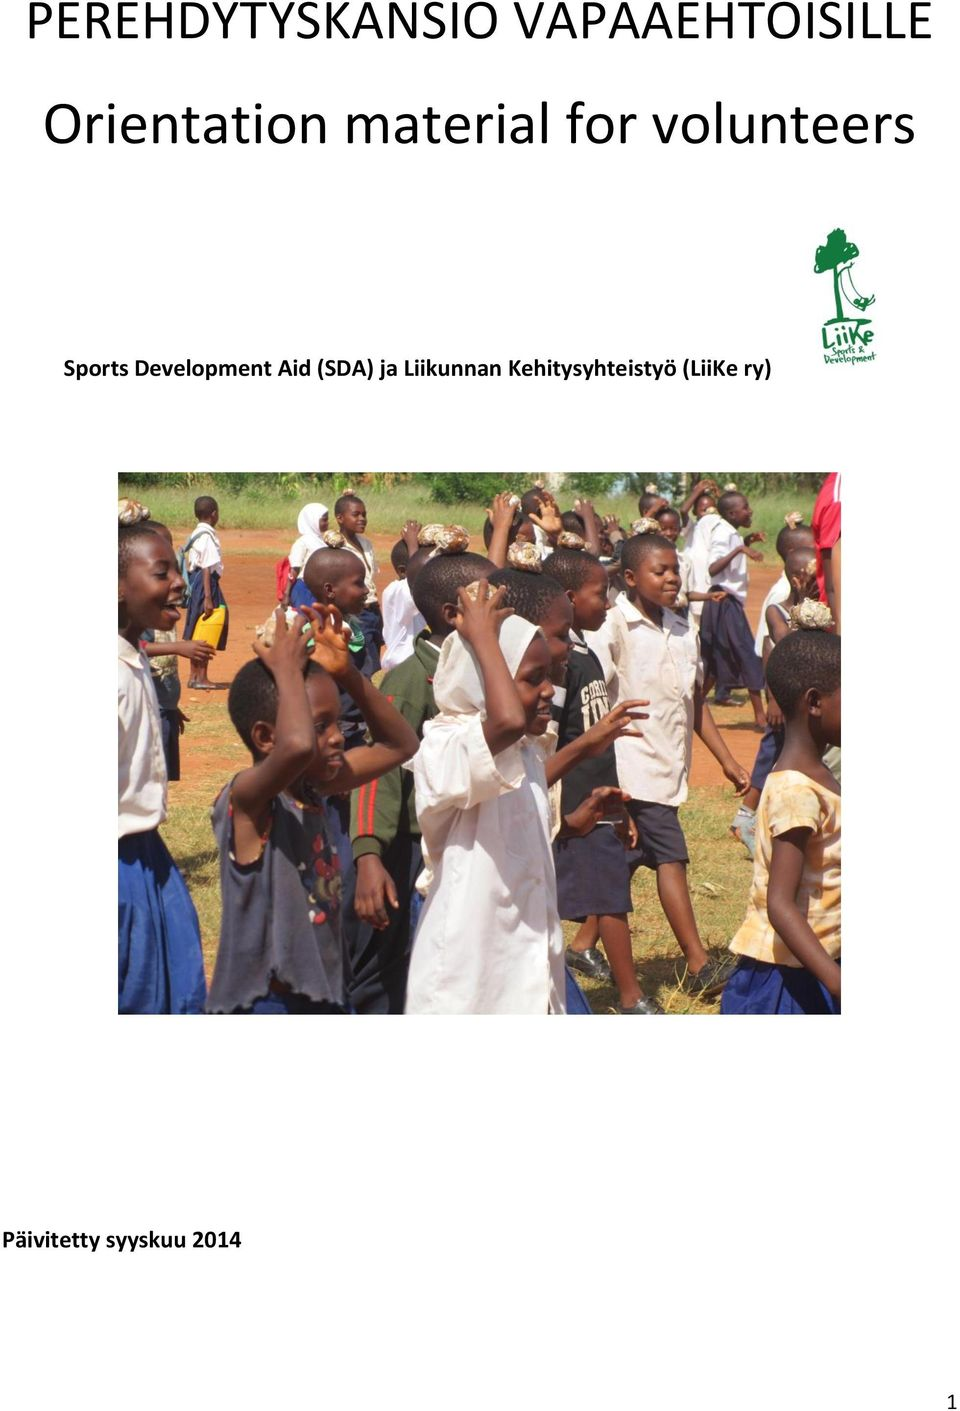 Sports Development Aid (SDA) ja